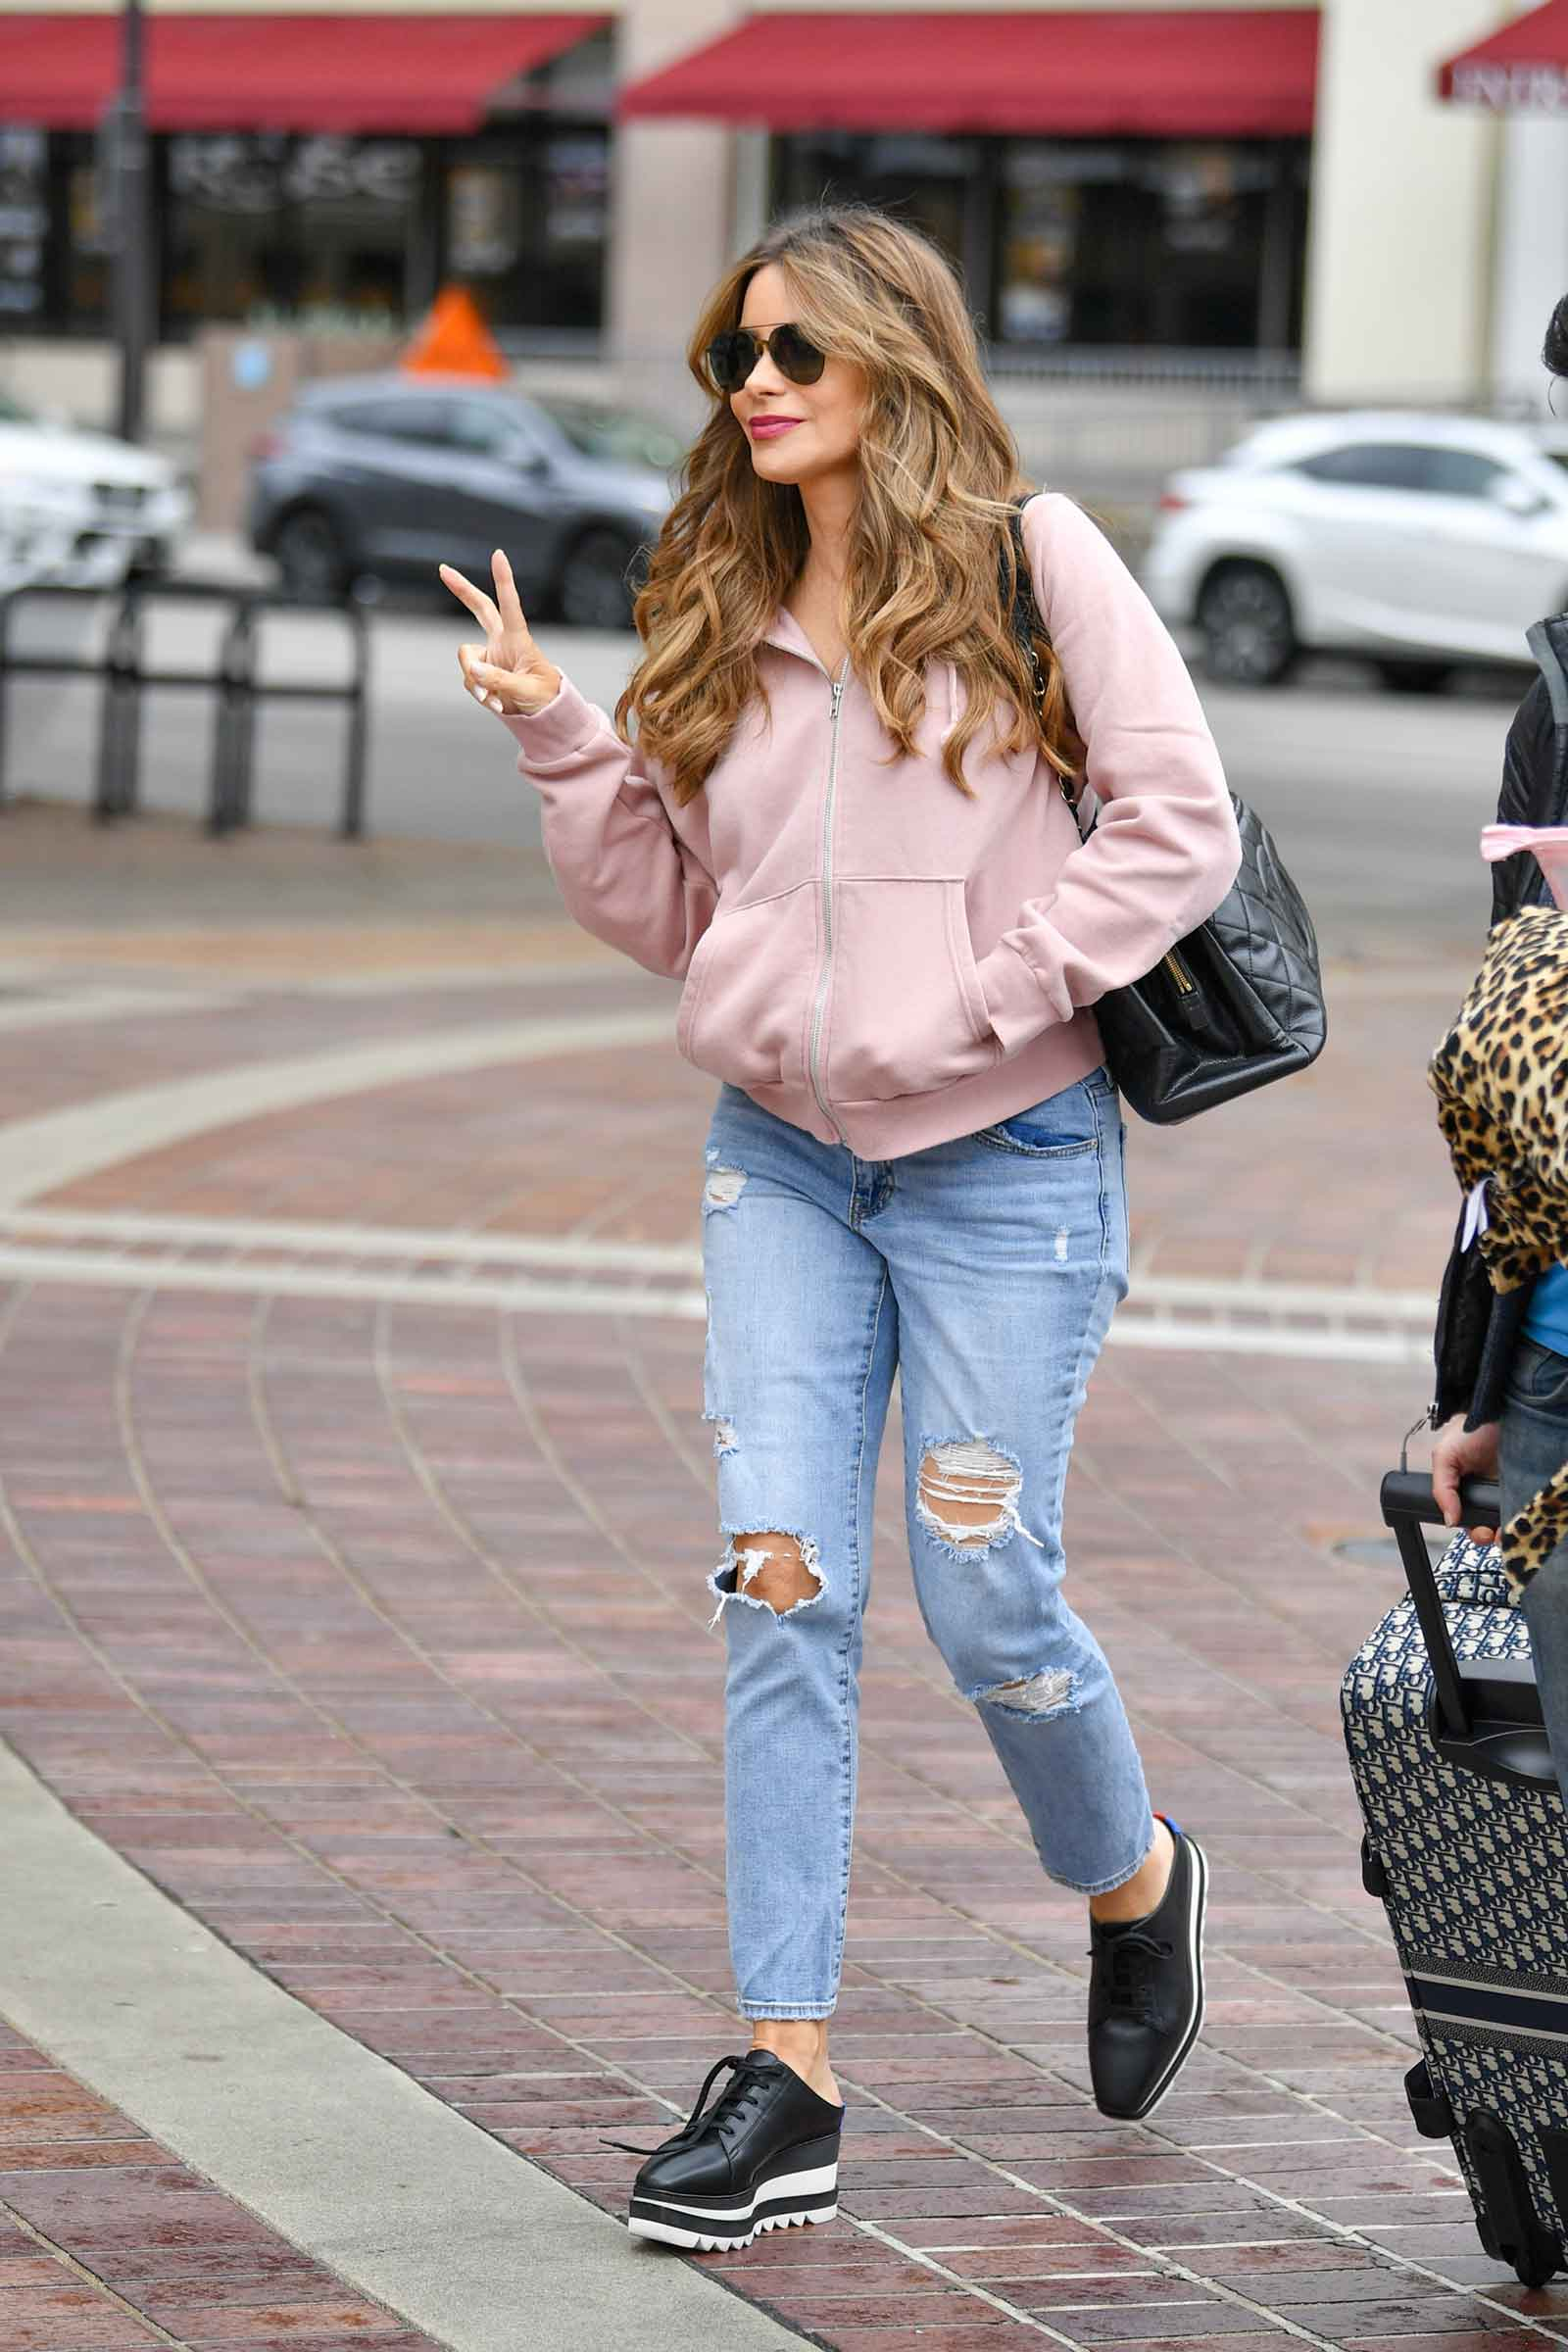 Sofia Vergara in Stella McCartney Platform Sneakers - Look for Less!